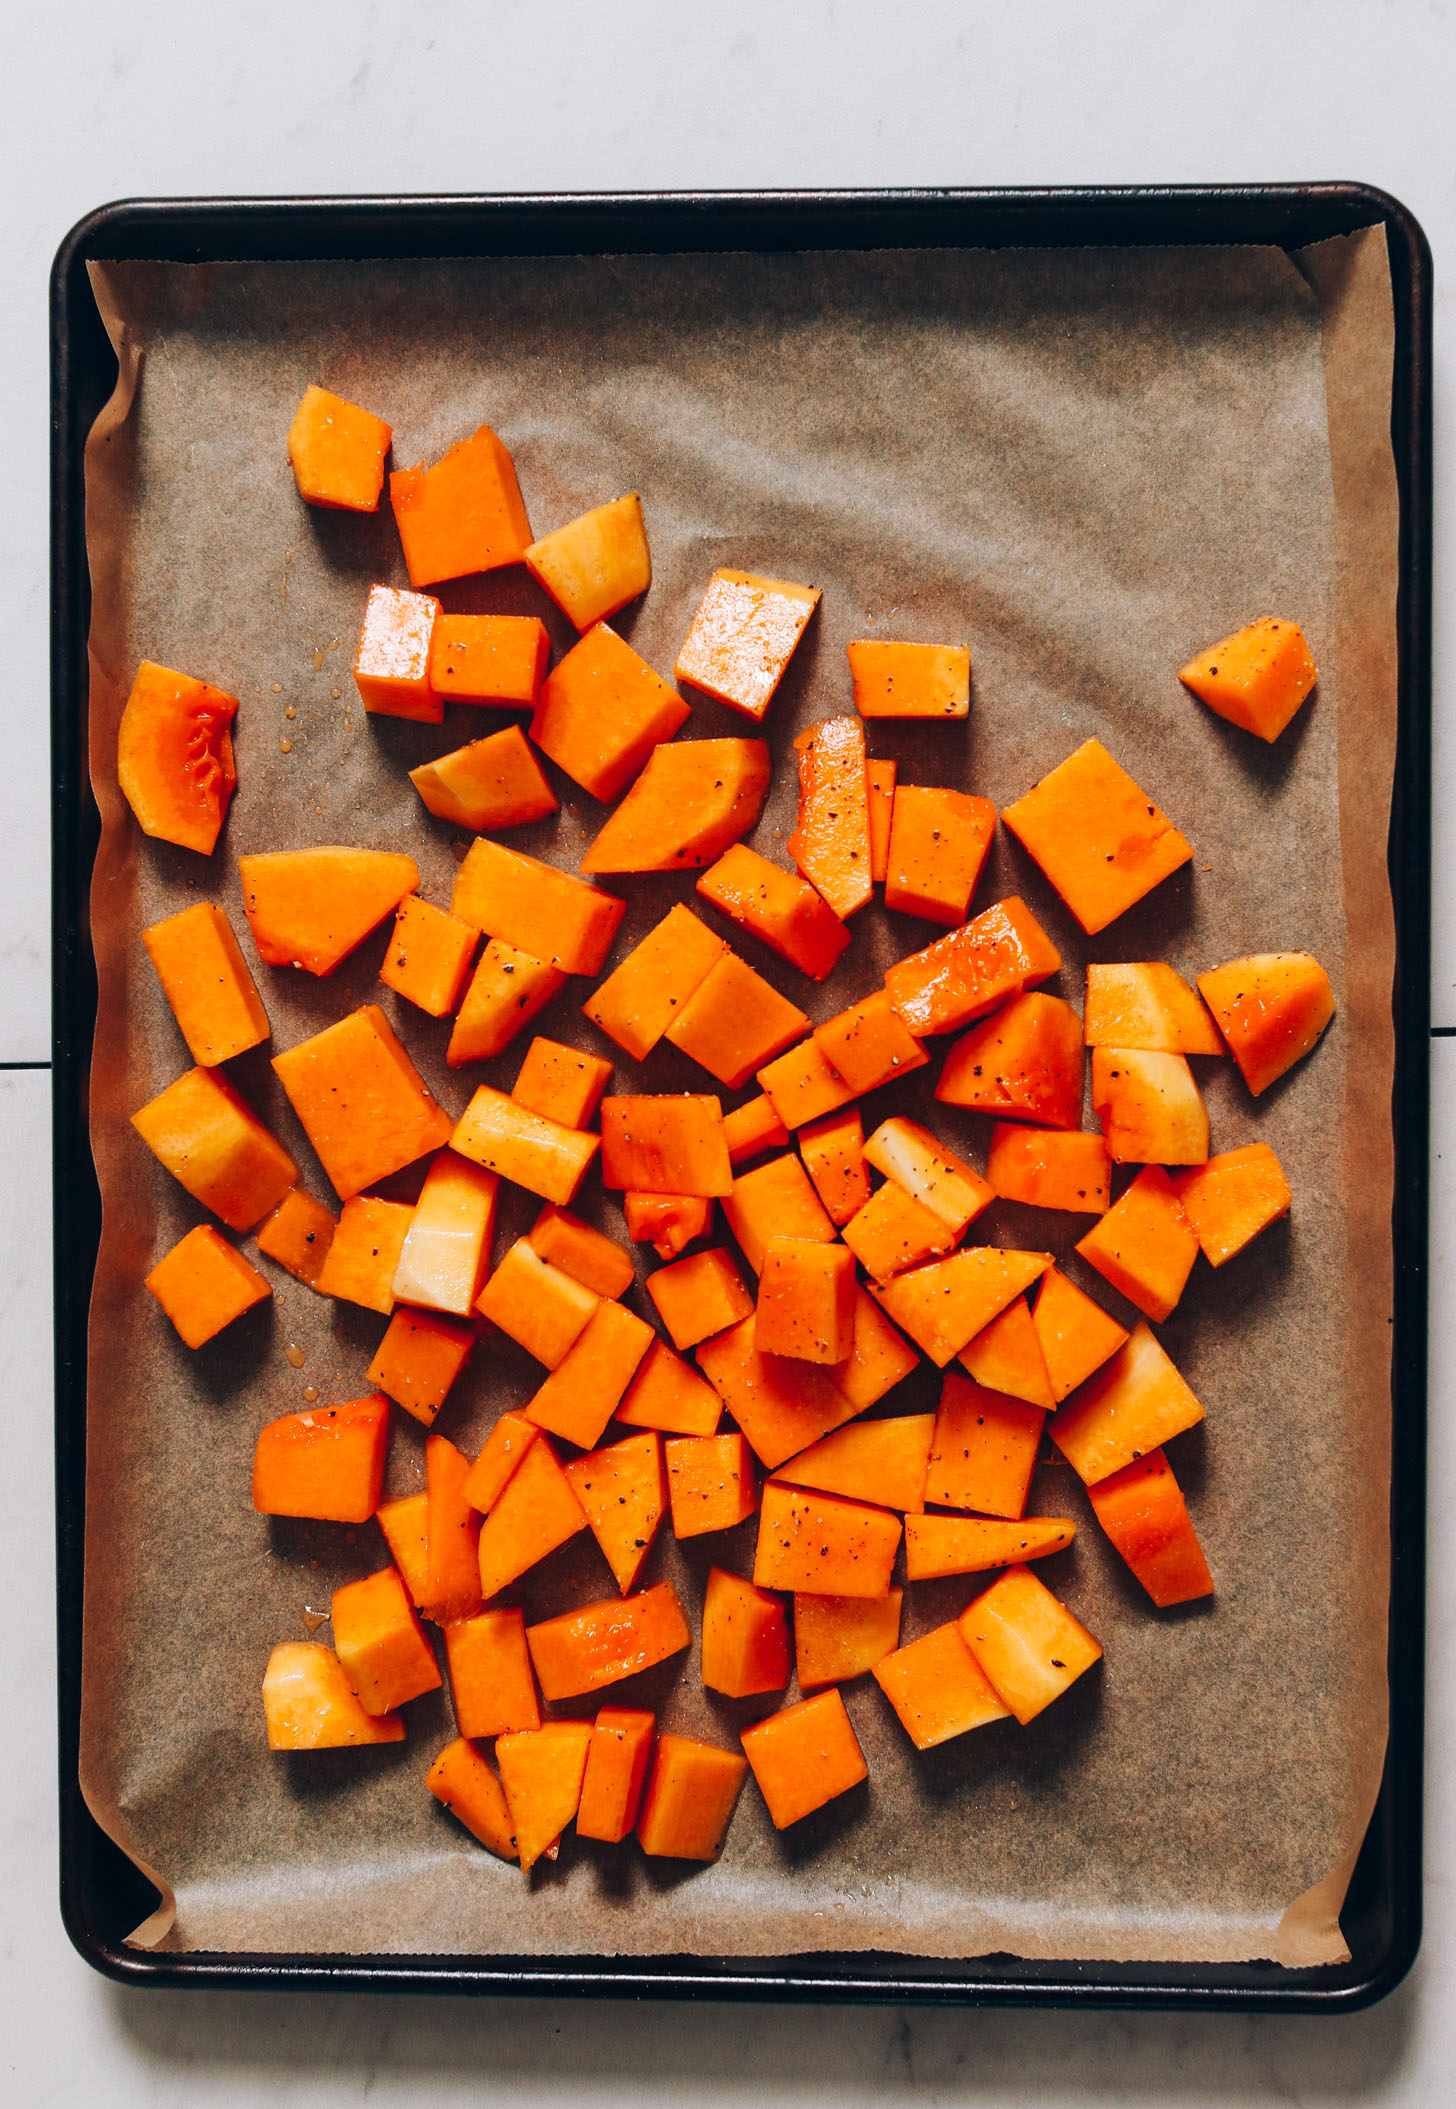 Cubed butternut squash seasoned with avocado oil, maple syrup, salt, and pepper